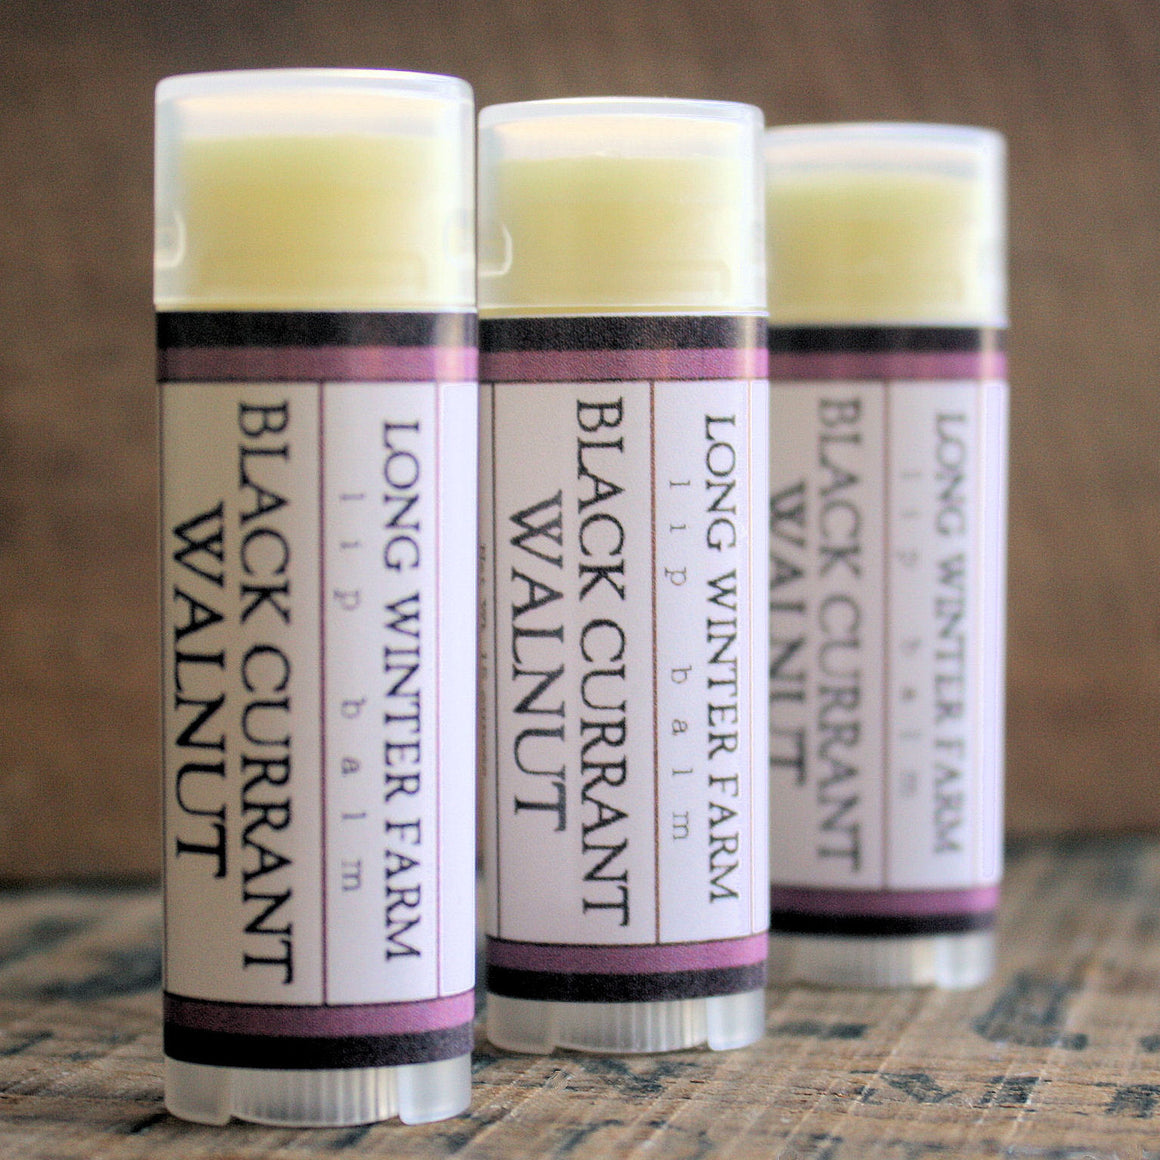 Black Currant Walnut Lip Balm